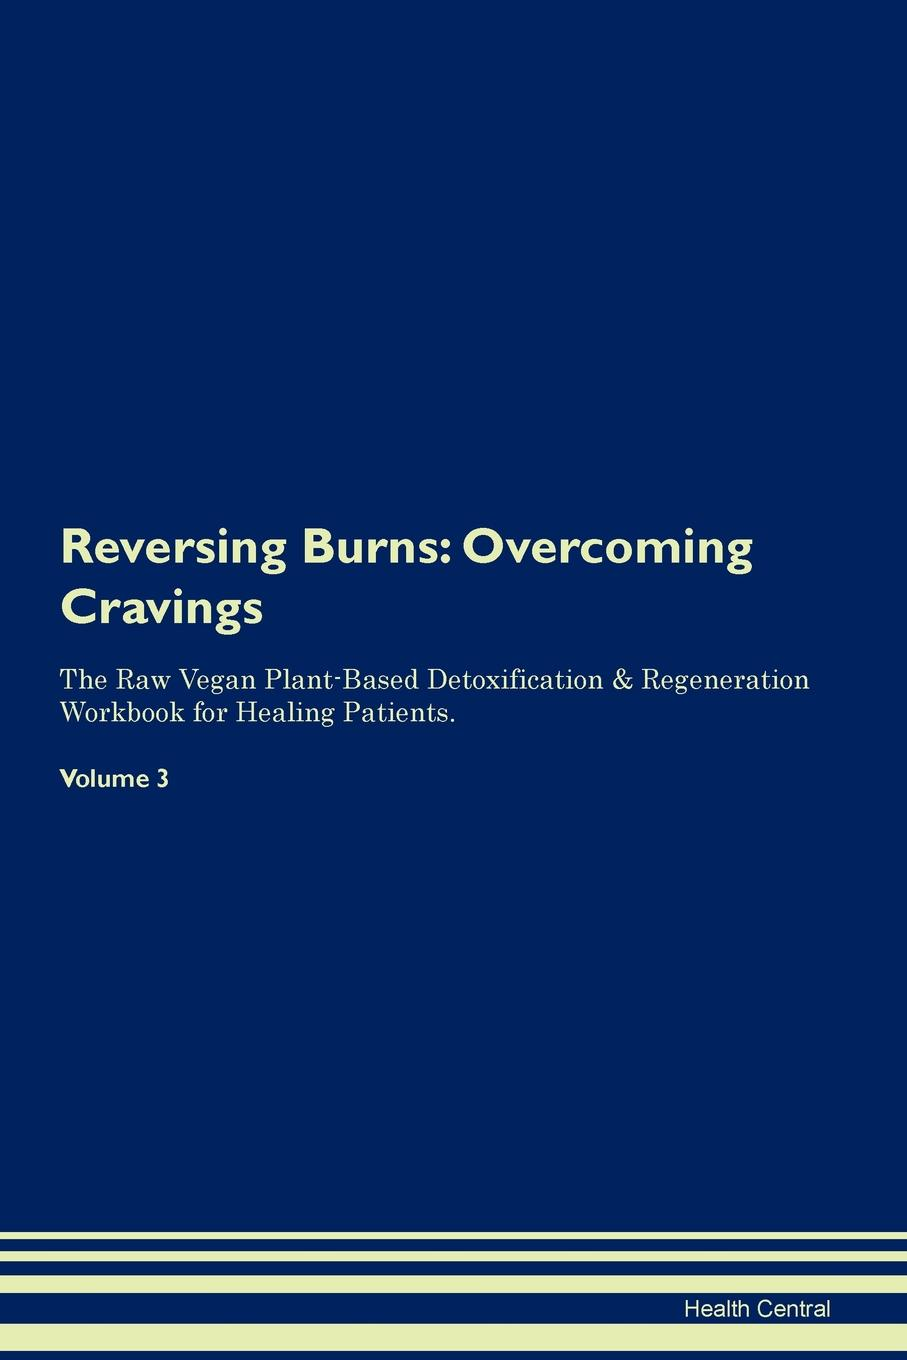 Health Central Reversing Burns. Overcoming Cravings The Raw Vegan Plant-Based Detoxification . Regeneration Workbook for Healing Patients. Volume 3 george burns w happiness healing enhancement your casebook collection for applying positive psychology in therapy